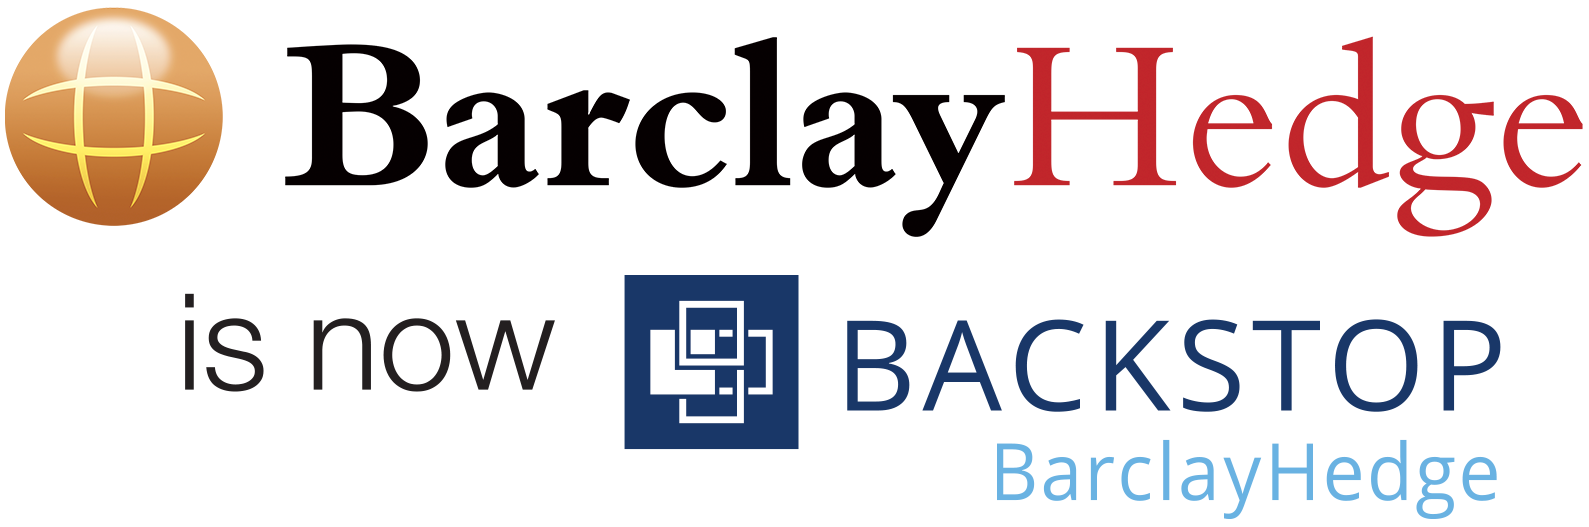 Barclay_Hedge_2019.png